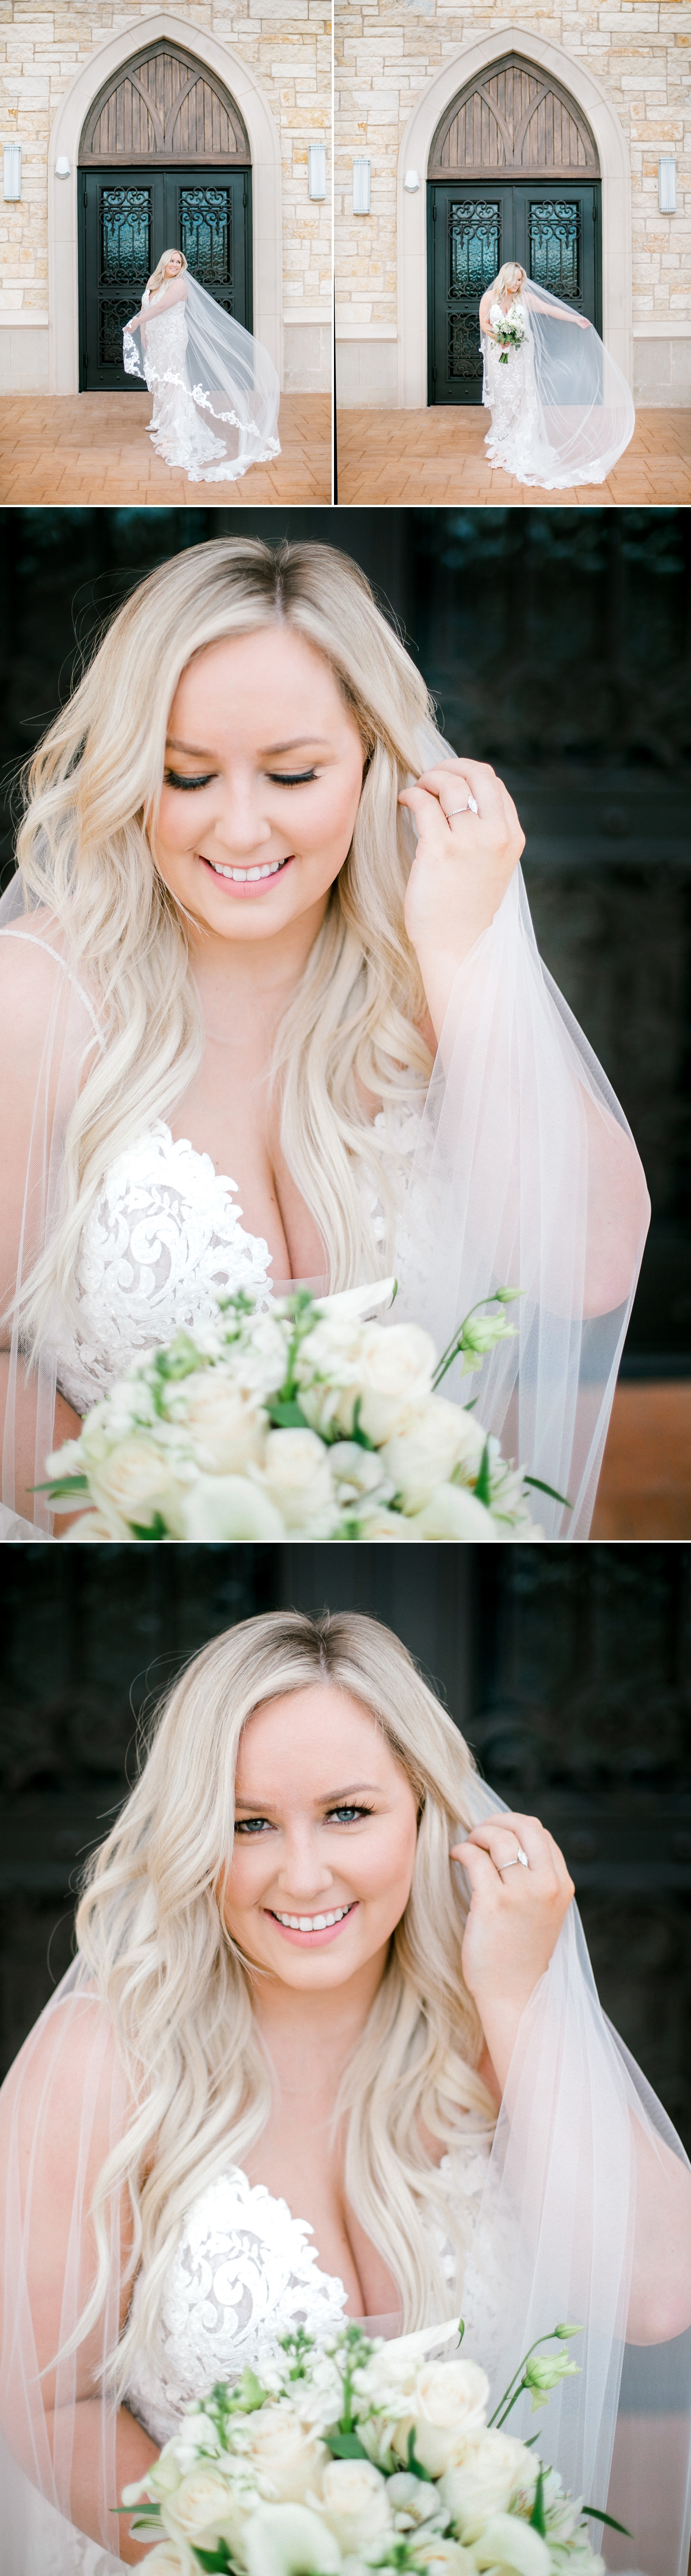 Bridal Photographer Fort Worth